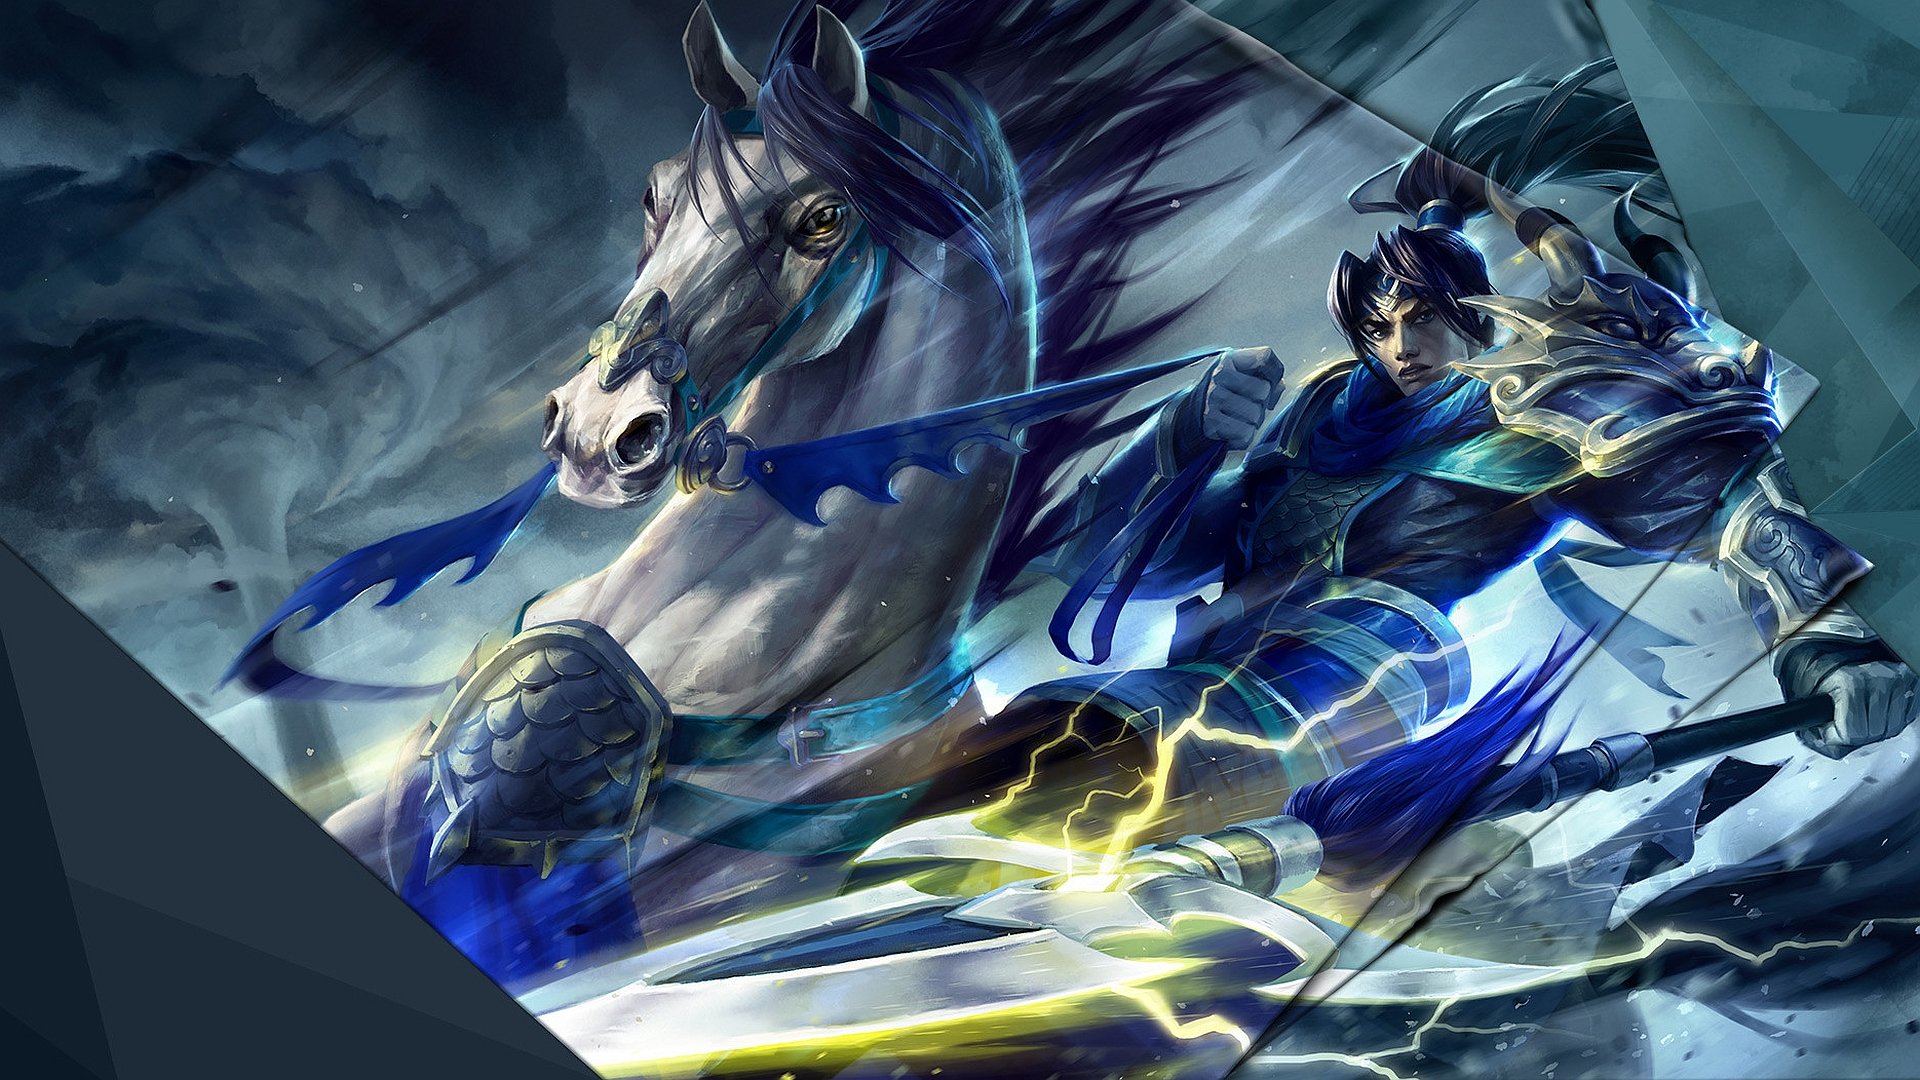 League Of Legends Animated Movie HD Wallpapers   All HD Wallpapers 1920x1080